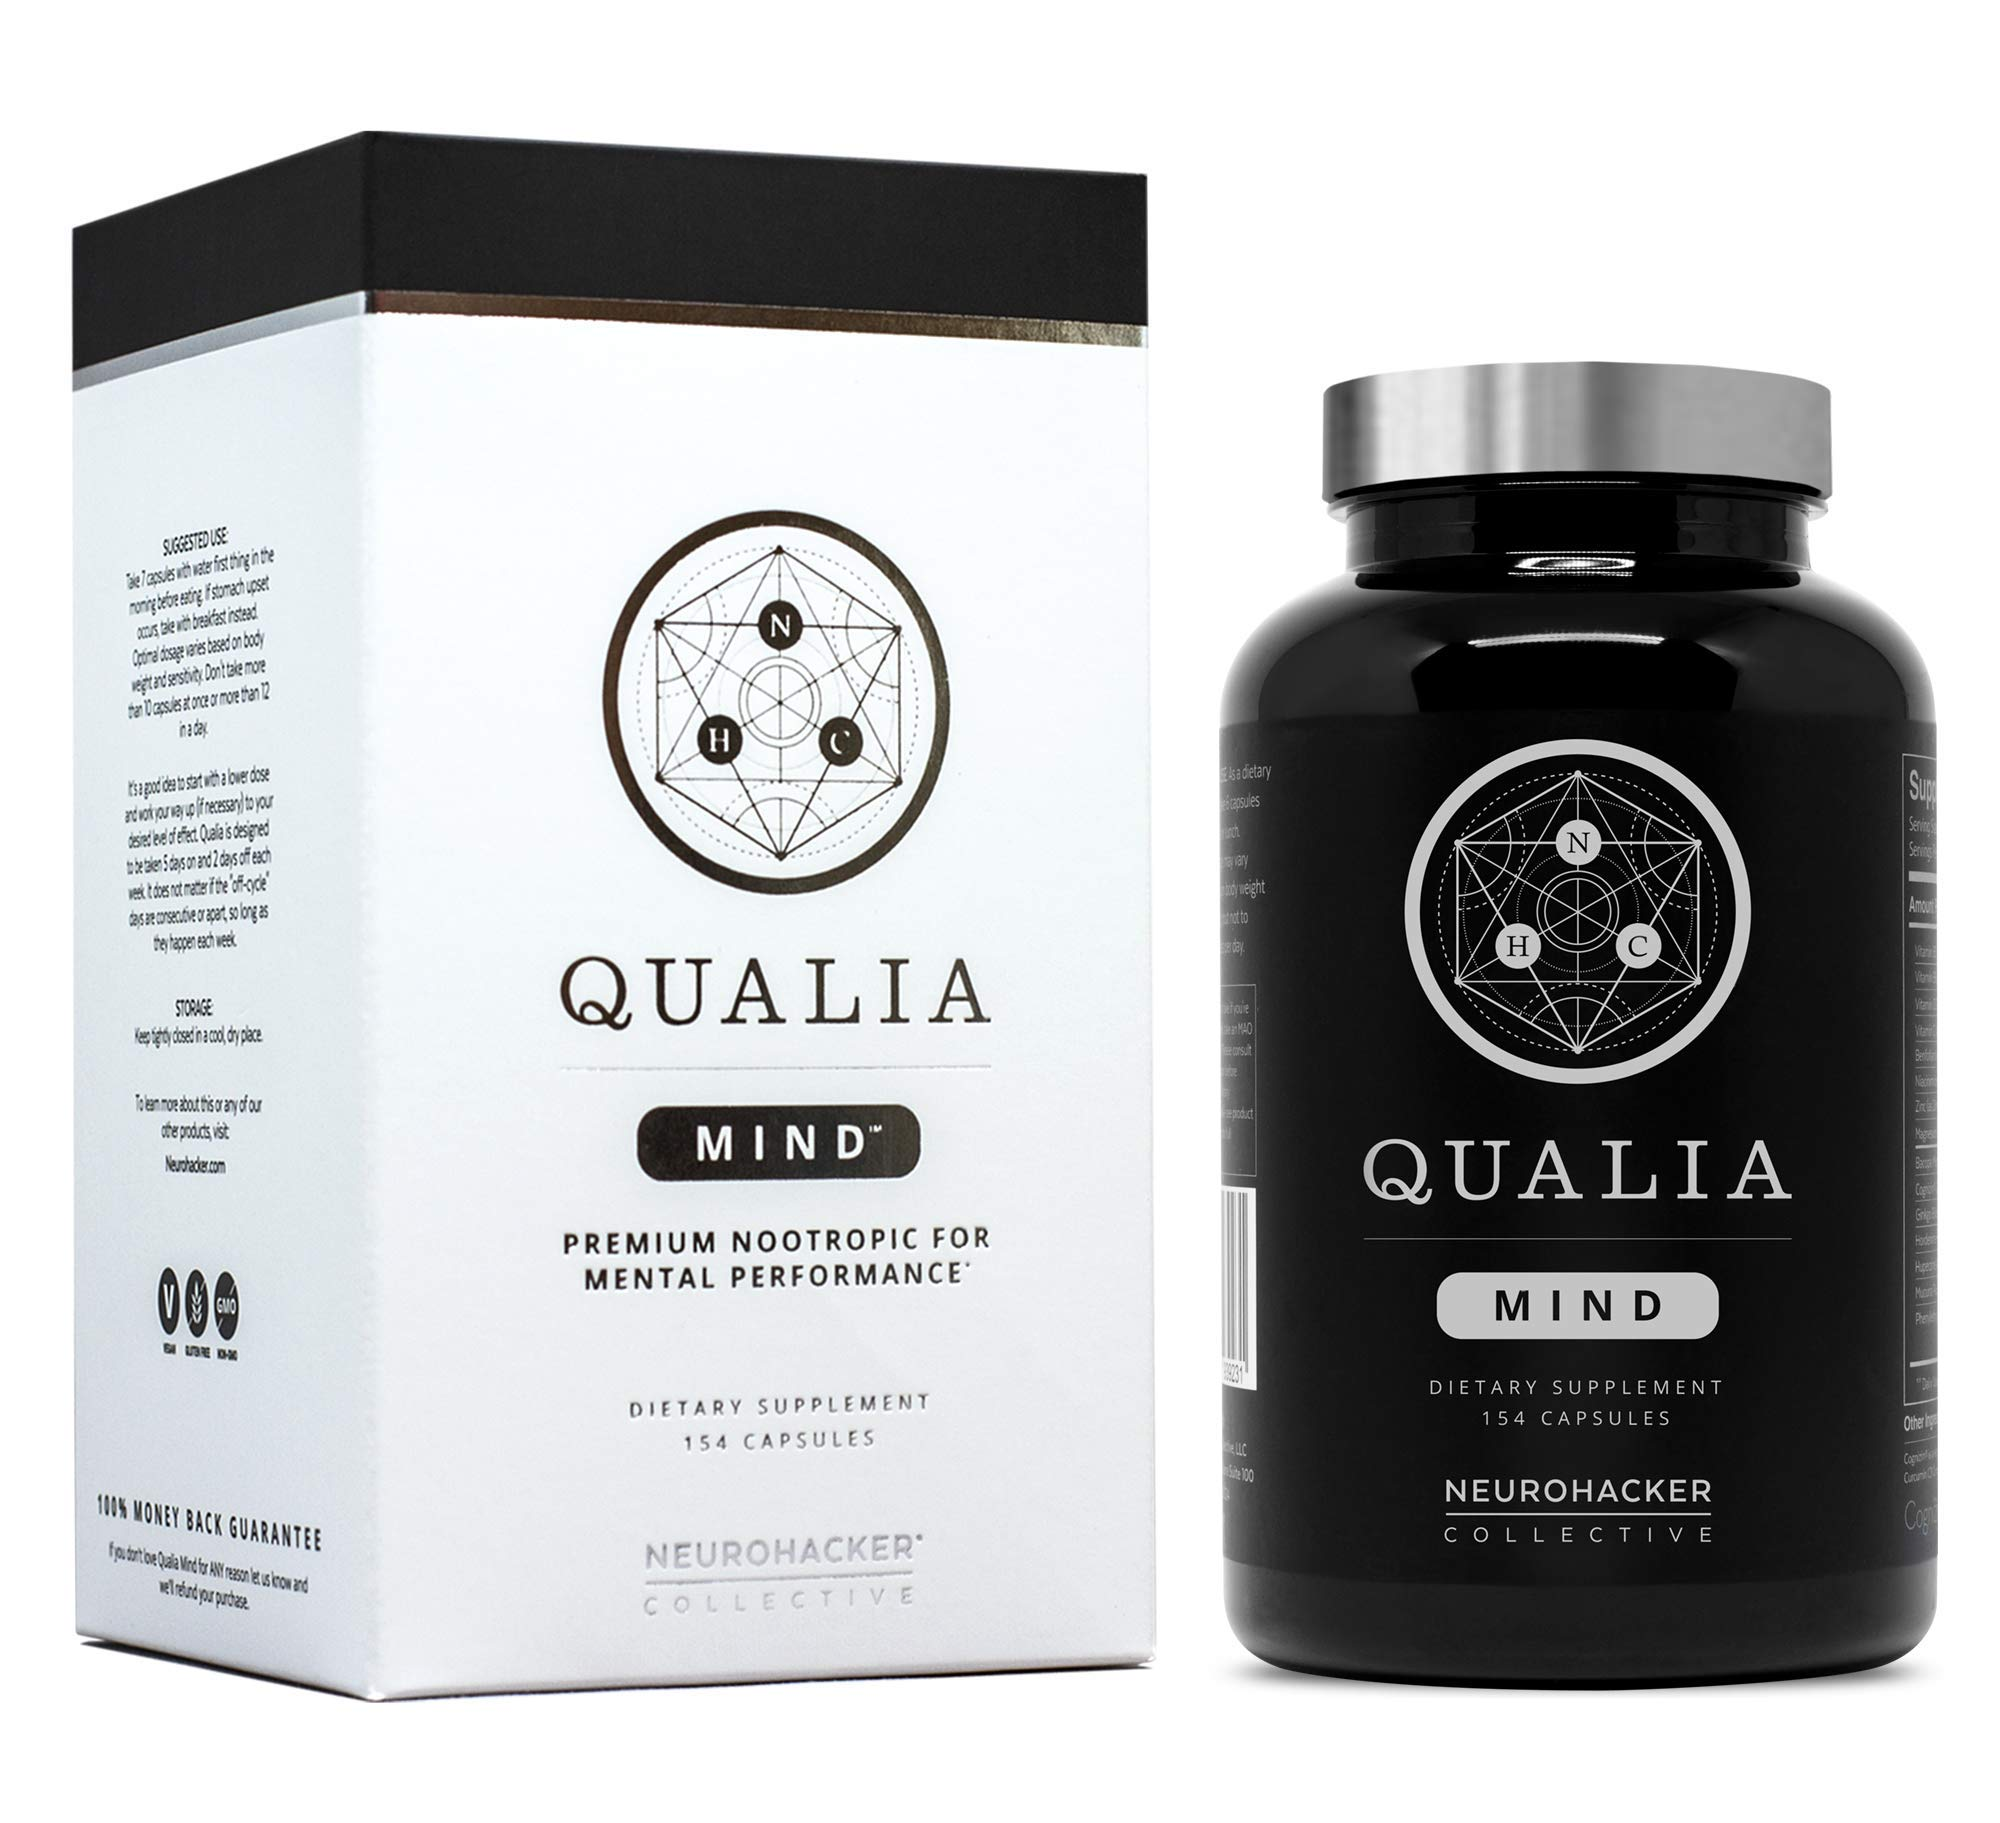 Qualia Mind Nootropics | Top Brain Supplement for Memory, Focus, Mental Energy, and Concentration with Ginkgo biloba, Alpha GPC, Bacopa monnieri, Celastrus paniculatus, DHA & More.(154 Ct) by NEUROHACKER COLLECTIVE